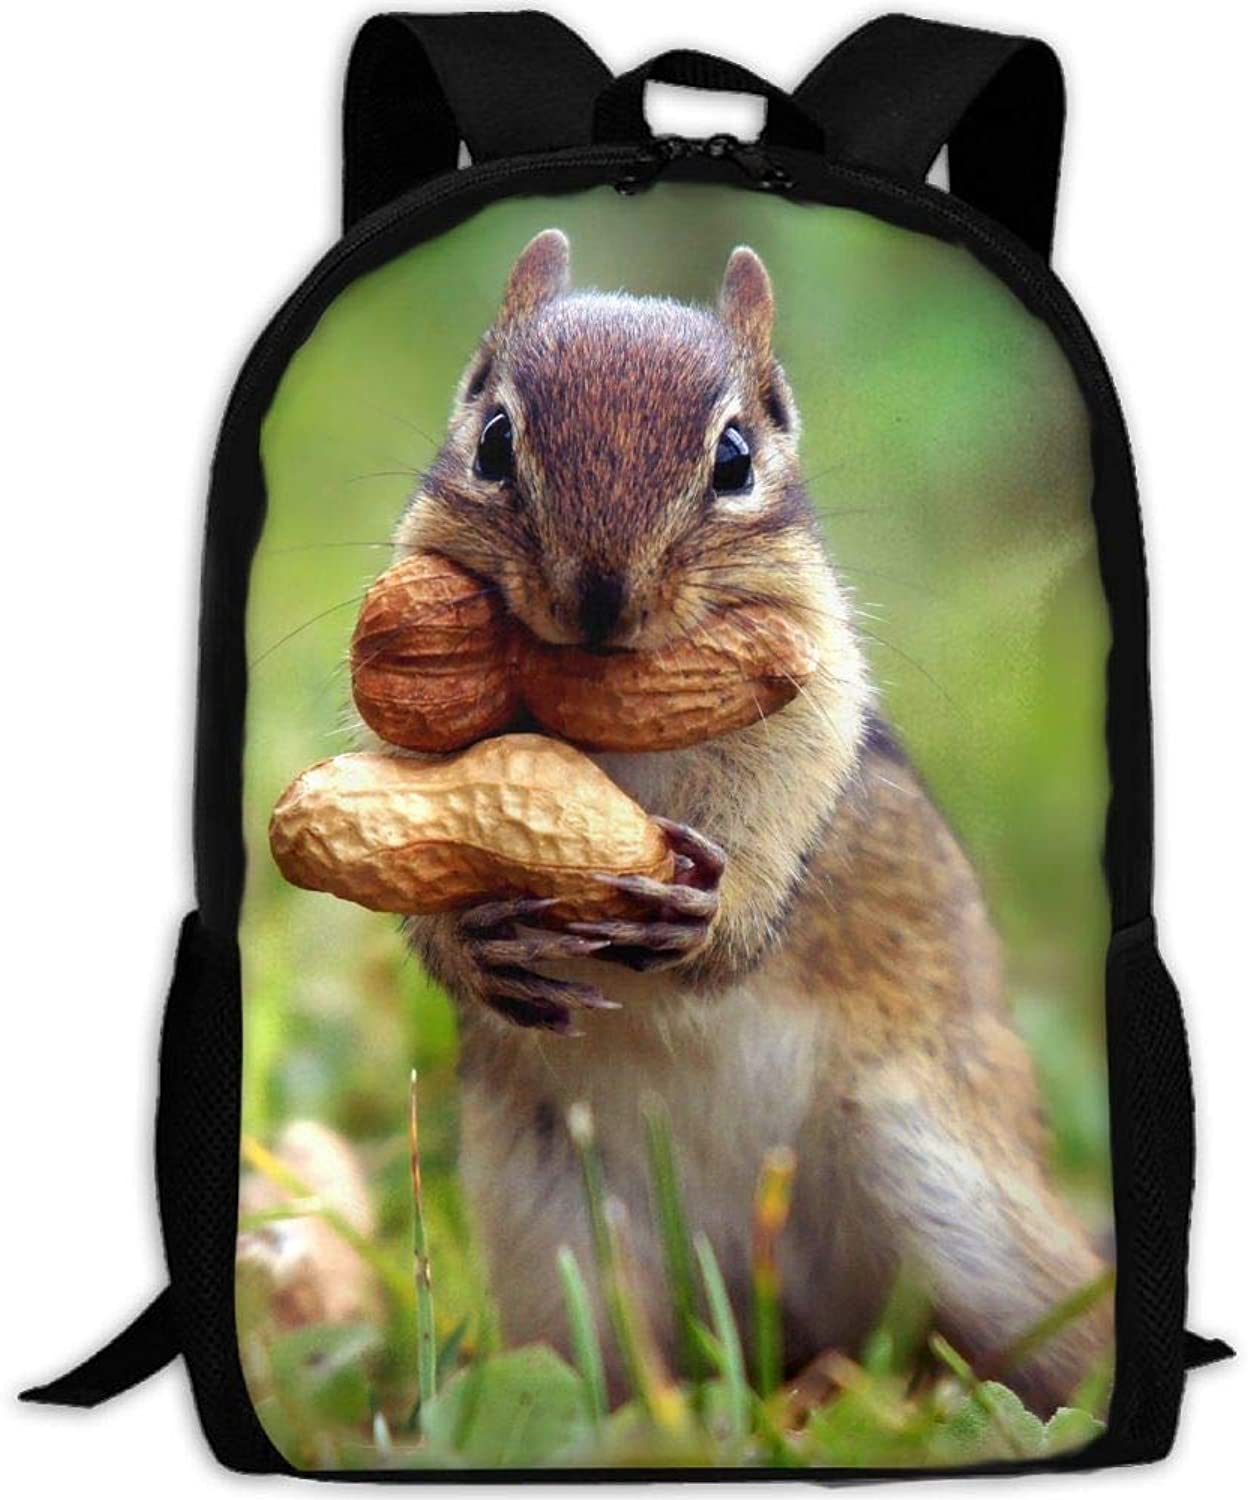 Backpack Briefcase Laptop Travel Hiking School Shoulder Bags Squirrel Nut Funny Daypack